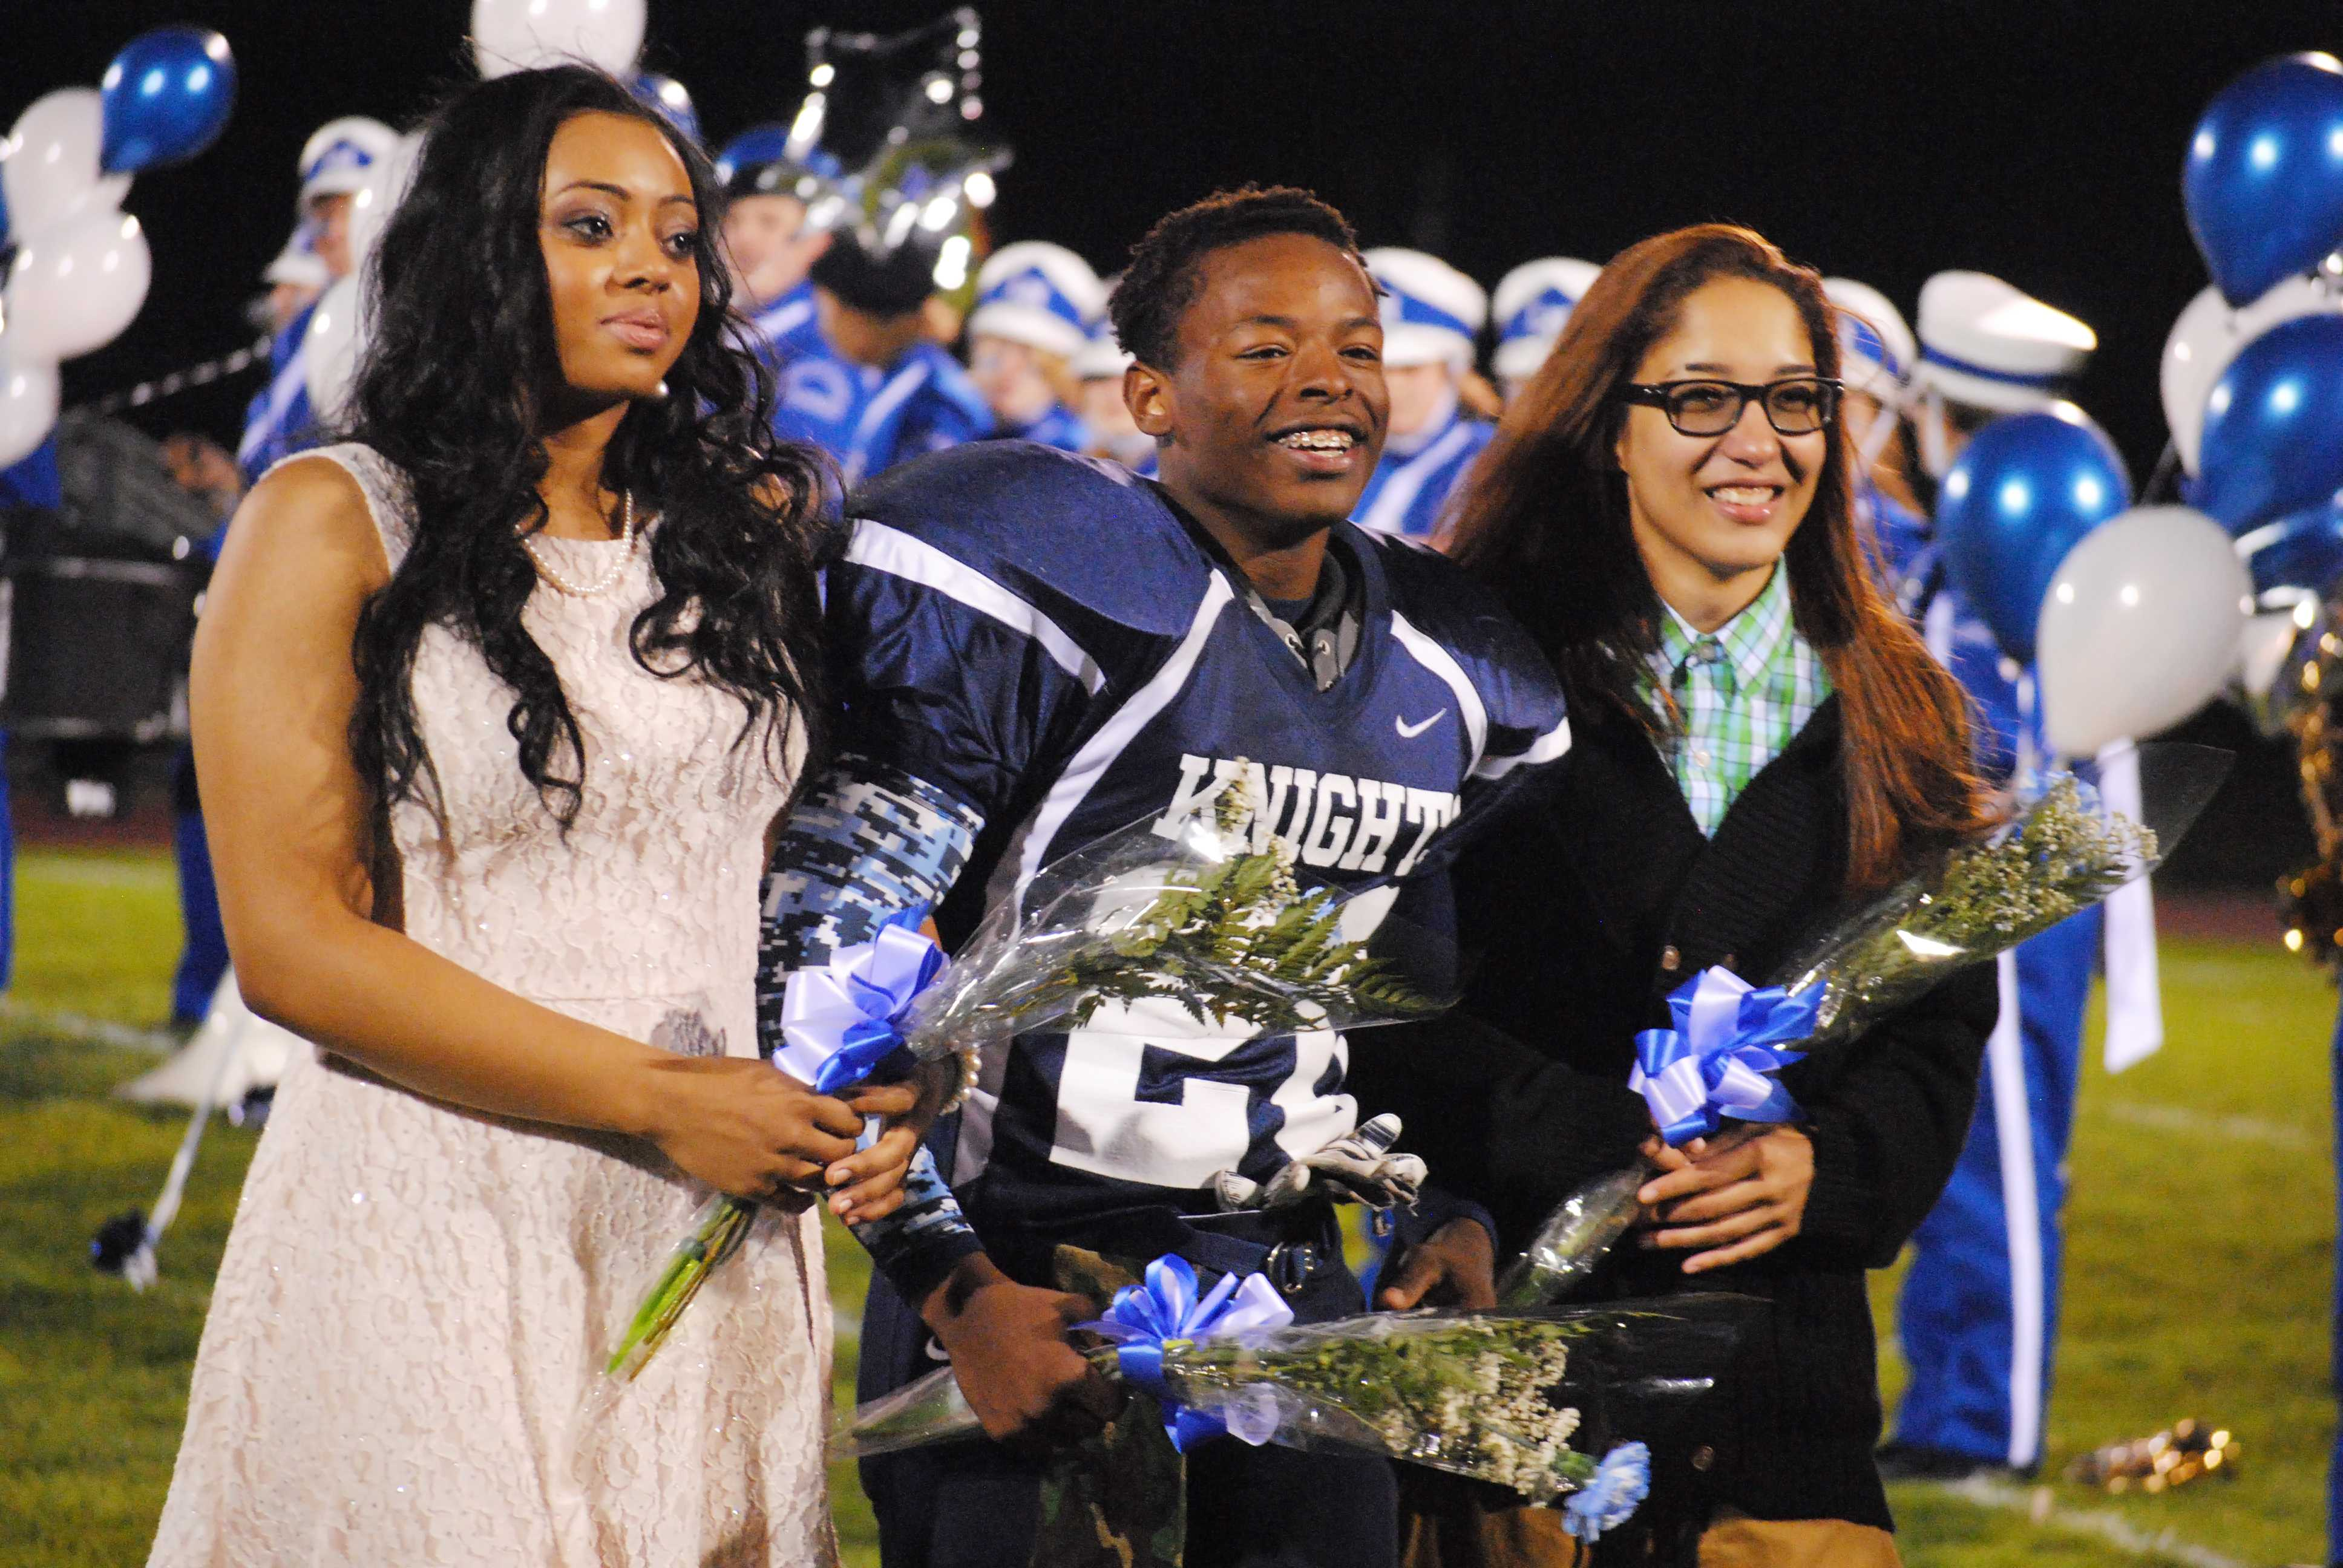 Seniors JeNessa Bogan, Aaron Holmes and Sabi Nieves walk down the decorated football field as part of the 2015 Homecoming Court. JeNessa Bogan and Sabi Nieves became the first same gendered King and Queen in Loy Norrix homecoming history. Photo Credit / Cori VanOstran